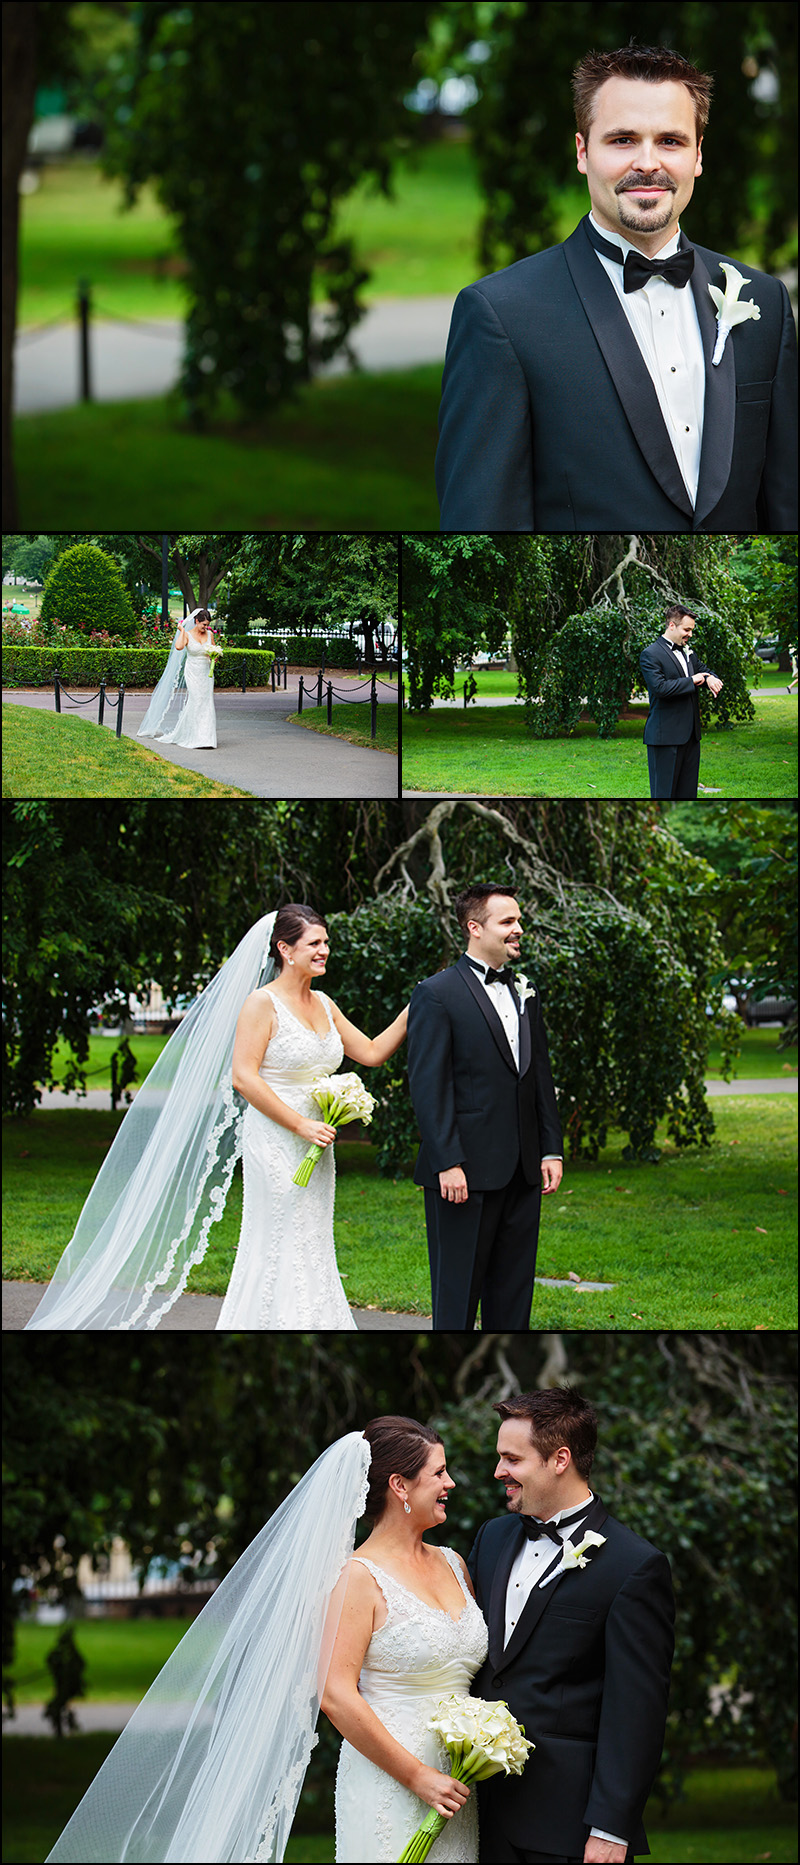 WEDDING PHOTOS BOSTON PUBLIC GARDENS